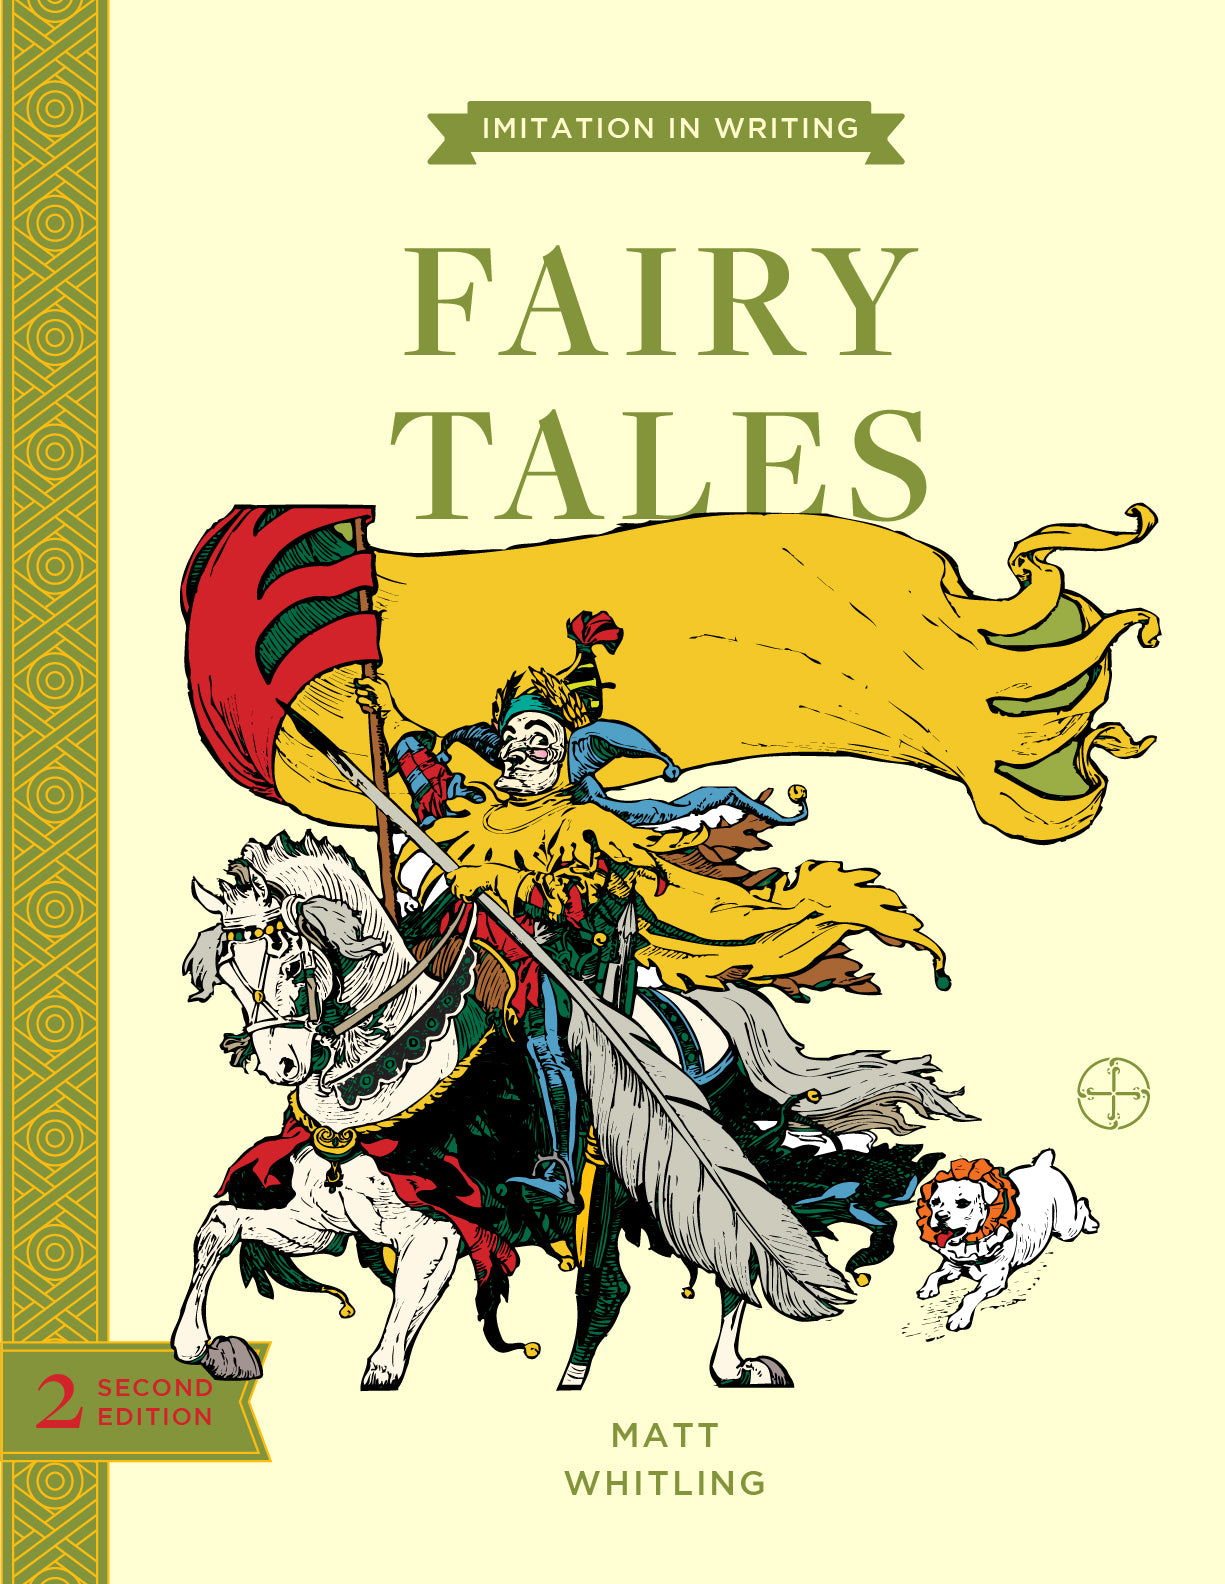 Imitation in Writing: Fairy Tales